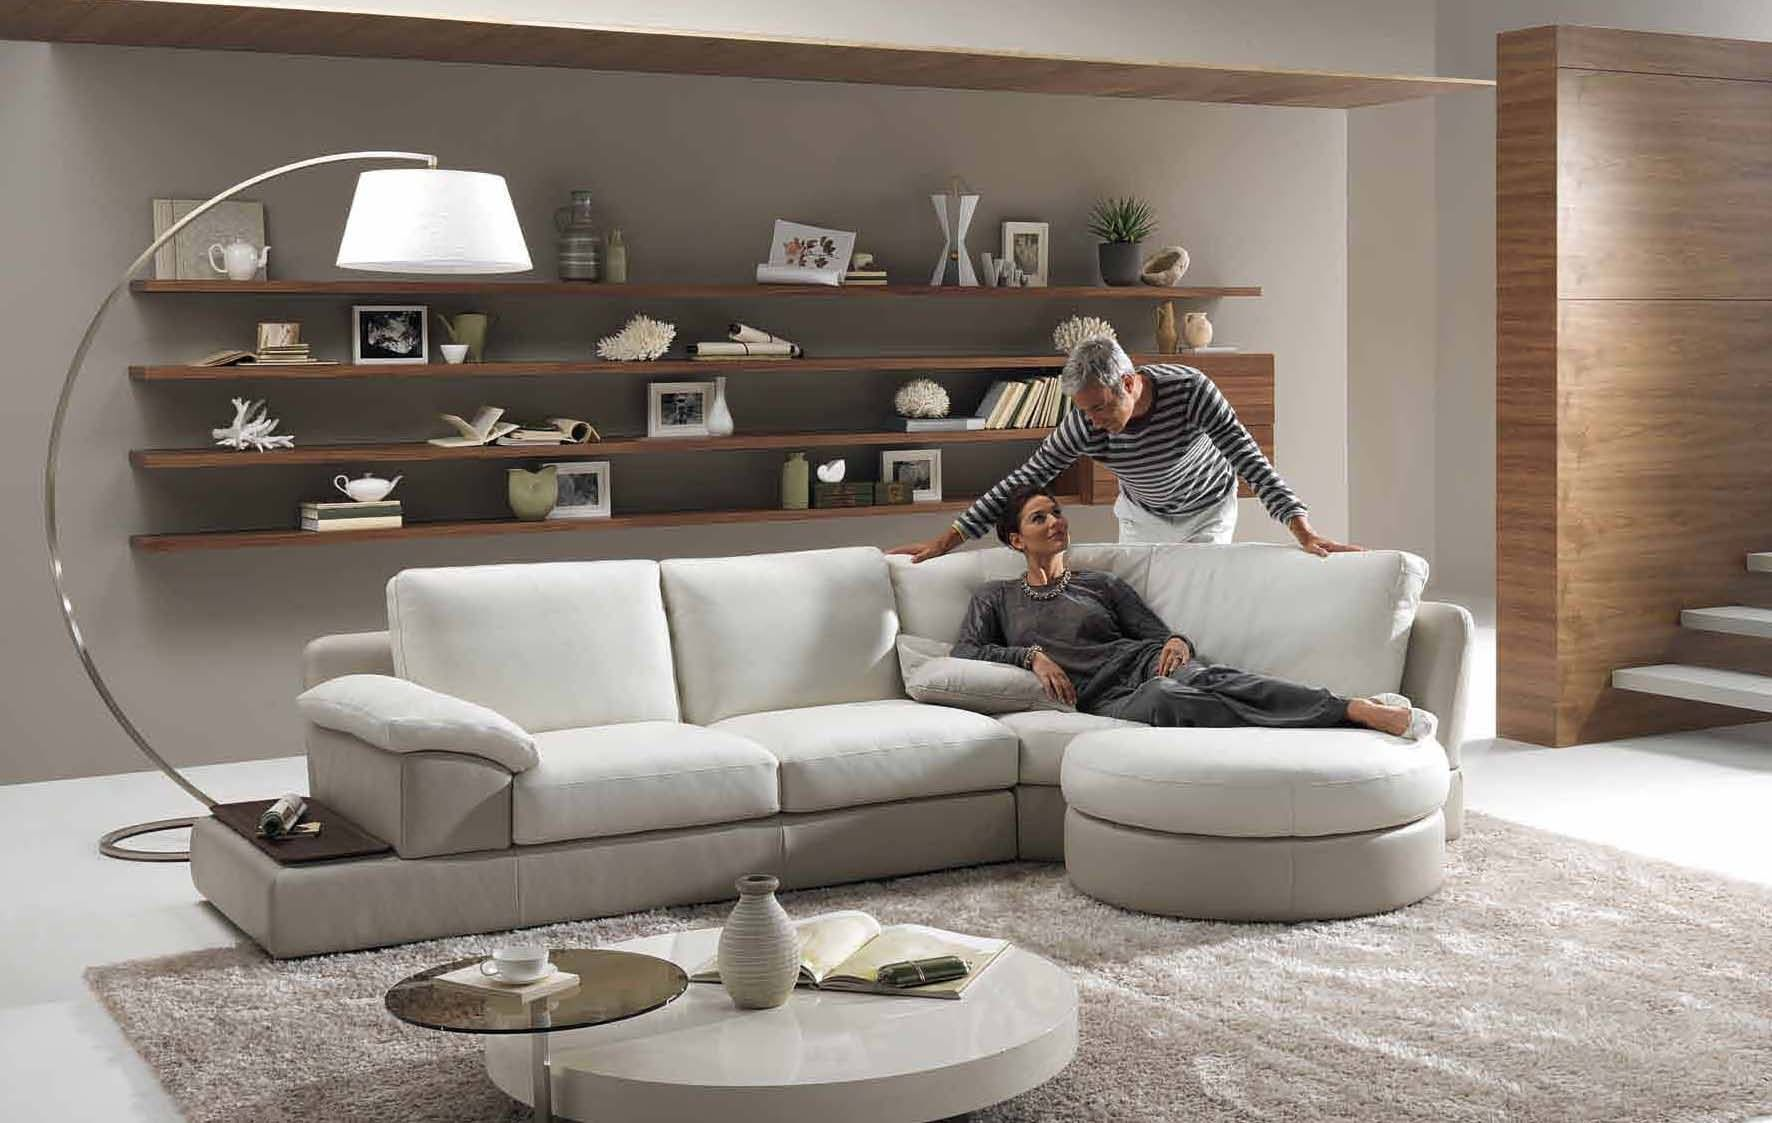 Living Room Inspiring Minimalist Living Room Designs Showing Pale White  Fabric Sofa On Pale White Floor